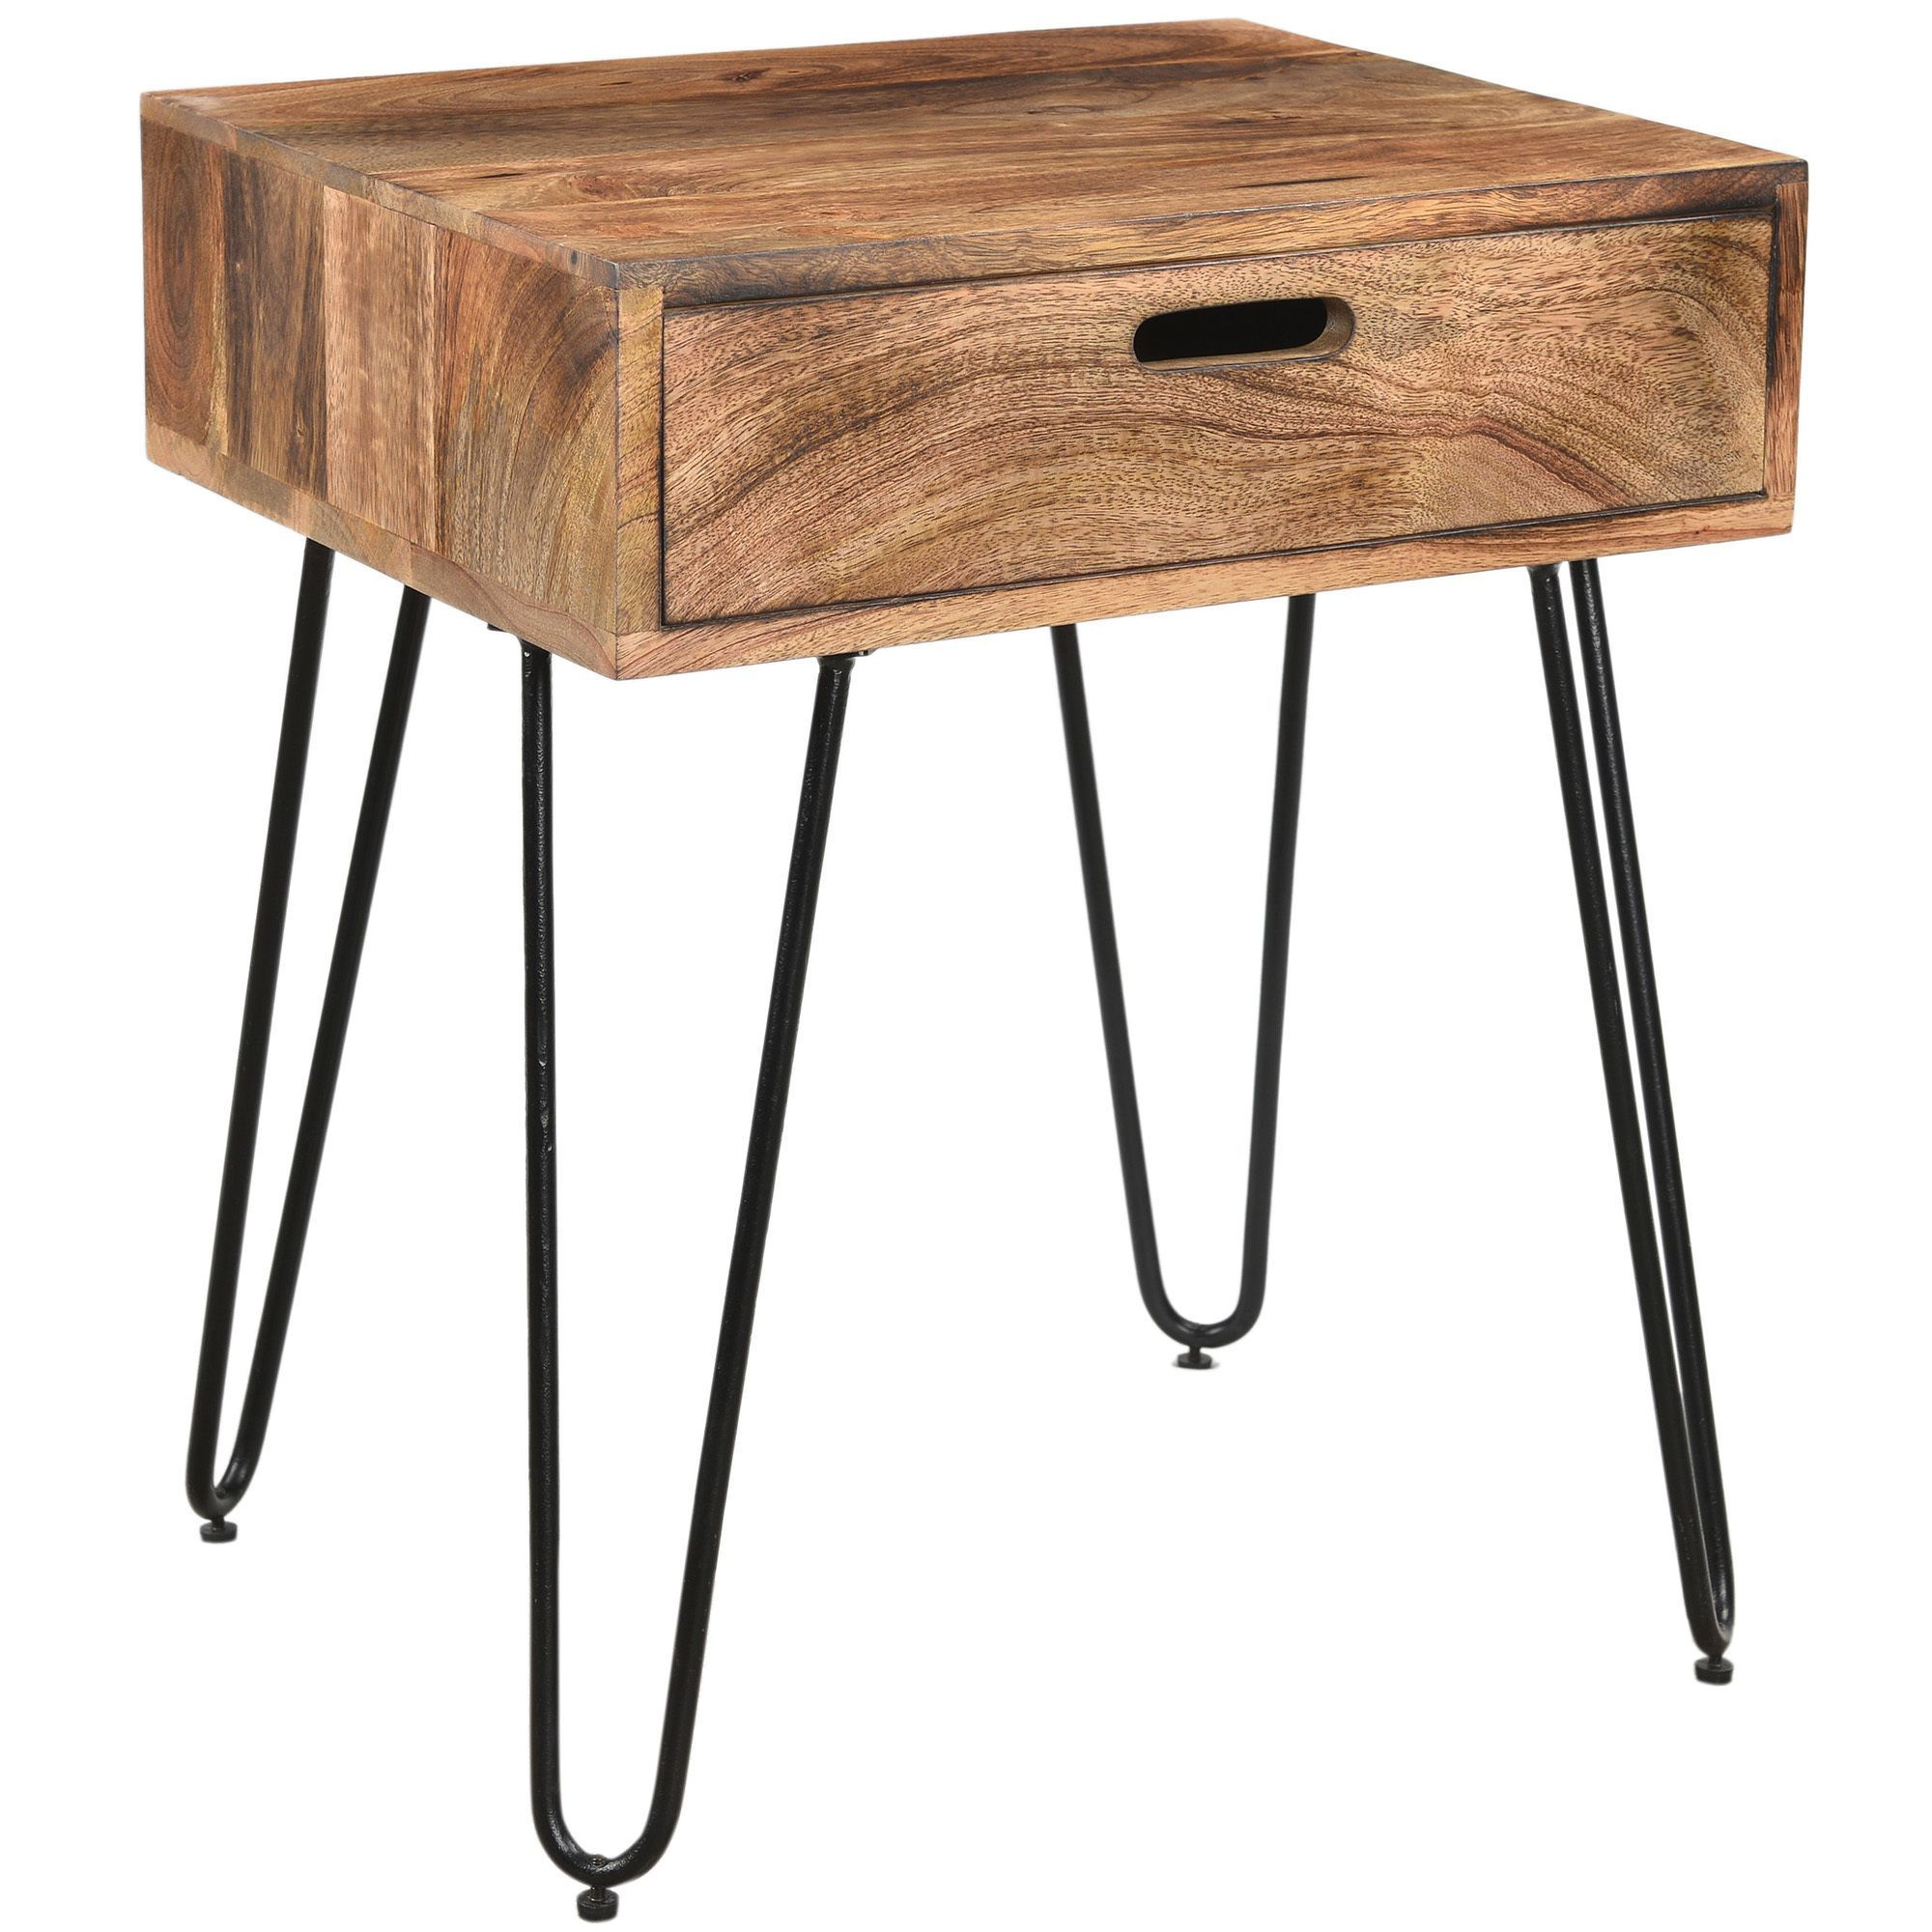 jaydo natural burnt solid mango wood black iron accent table with drawer worldwide brown outdoor coffee white living room furniture ideas tiffany tulip lamp classic design wine